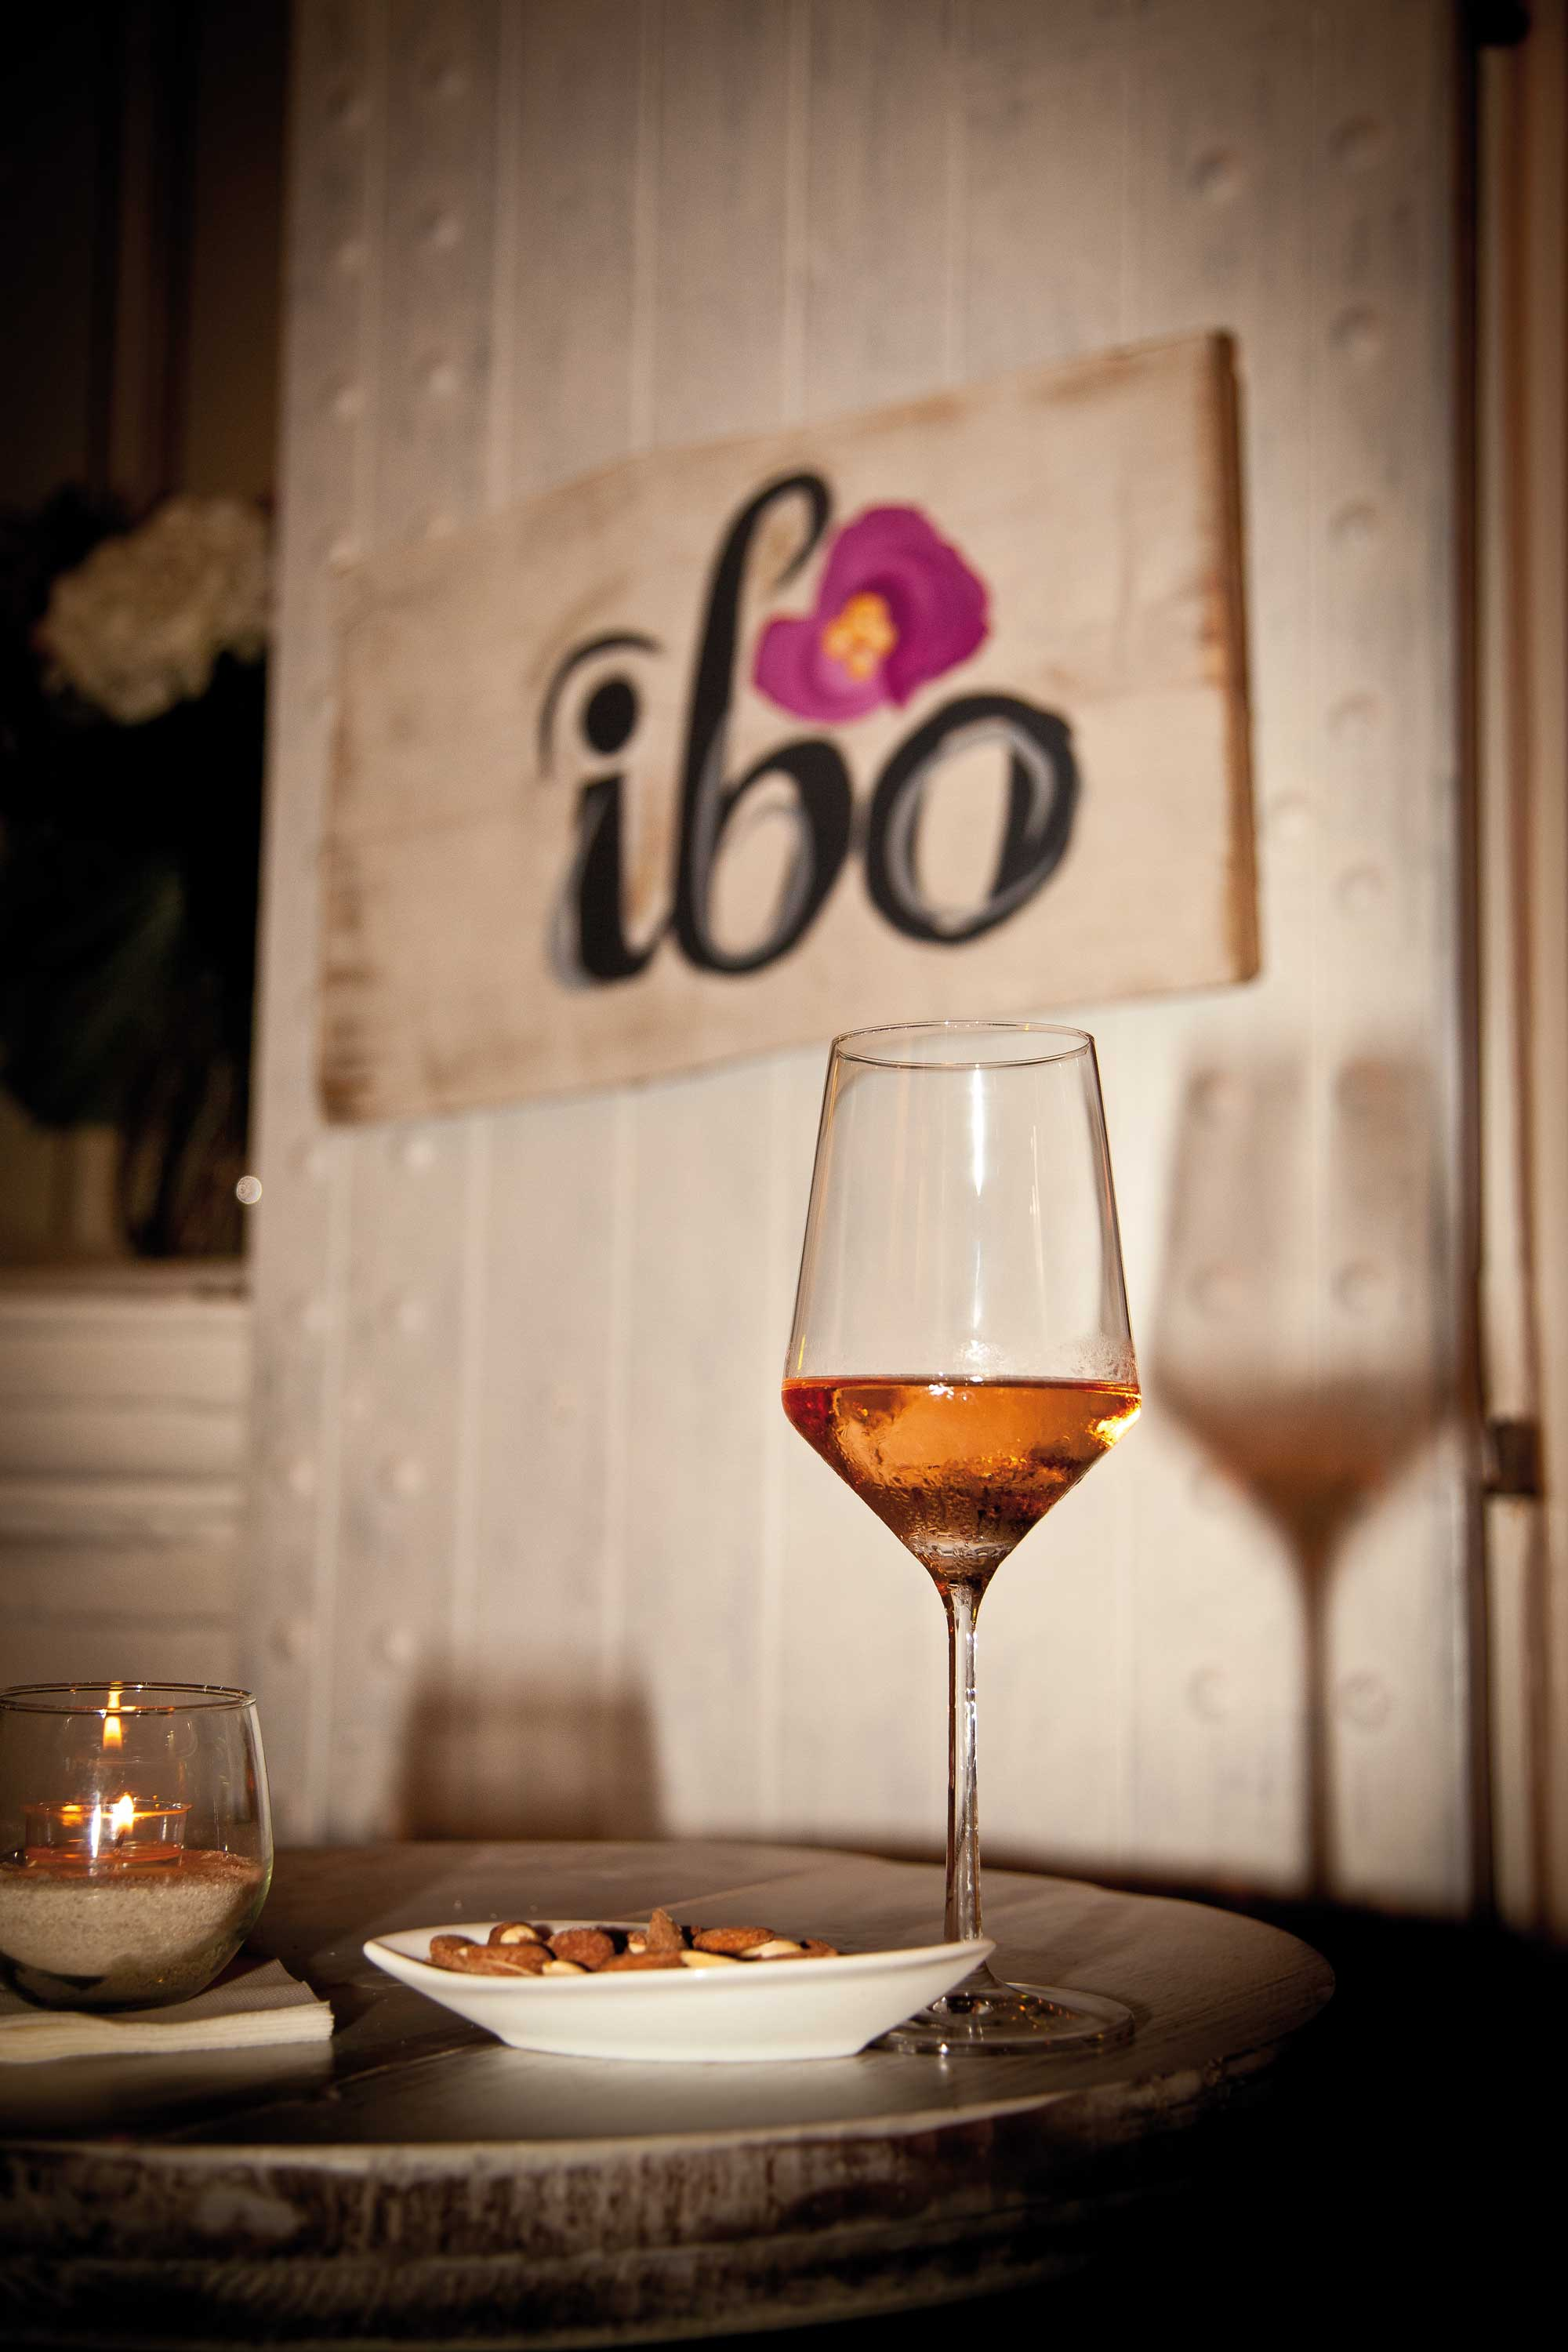 ibo Cocktails Ibiza